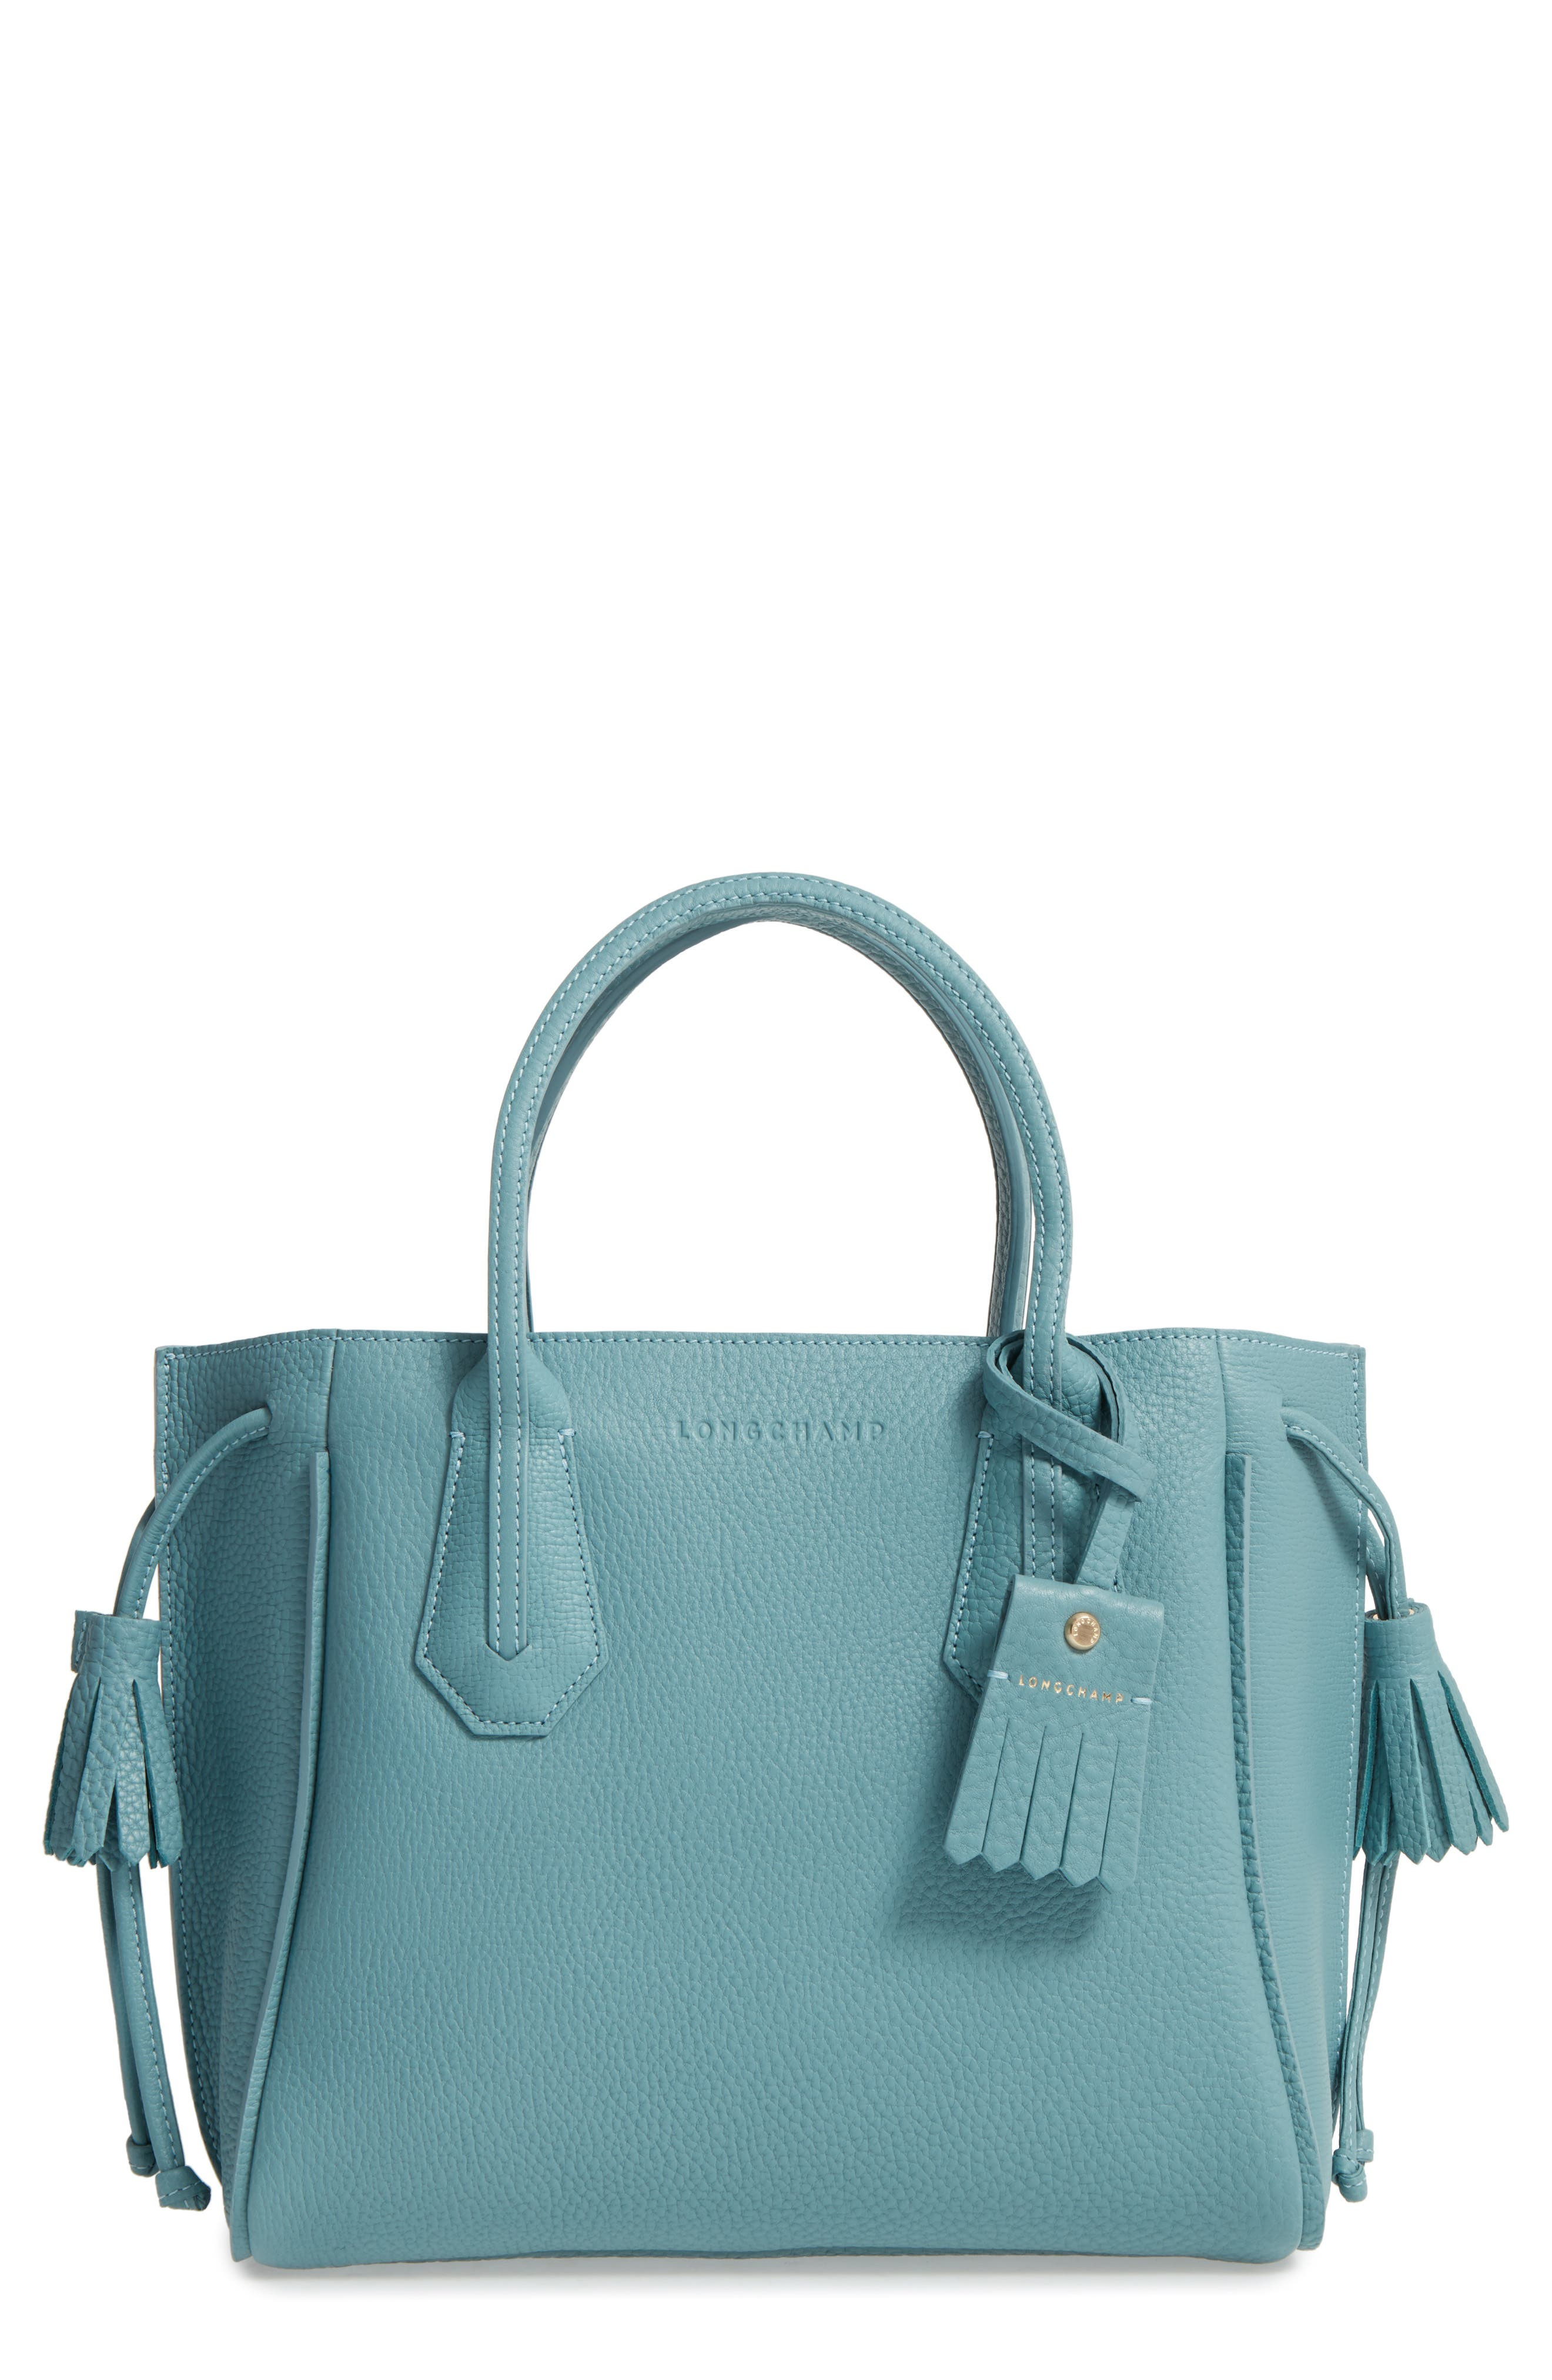 Main Image - Longchamp 'Small Penelope' Leather Tote